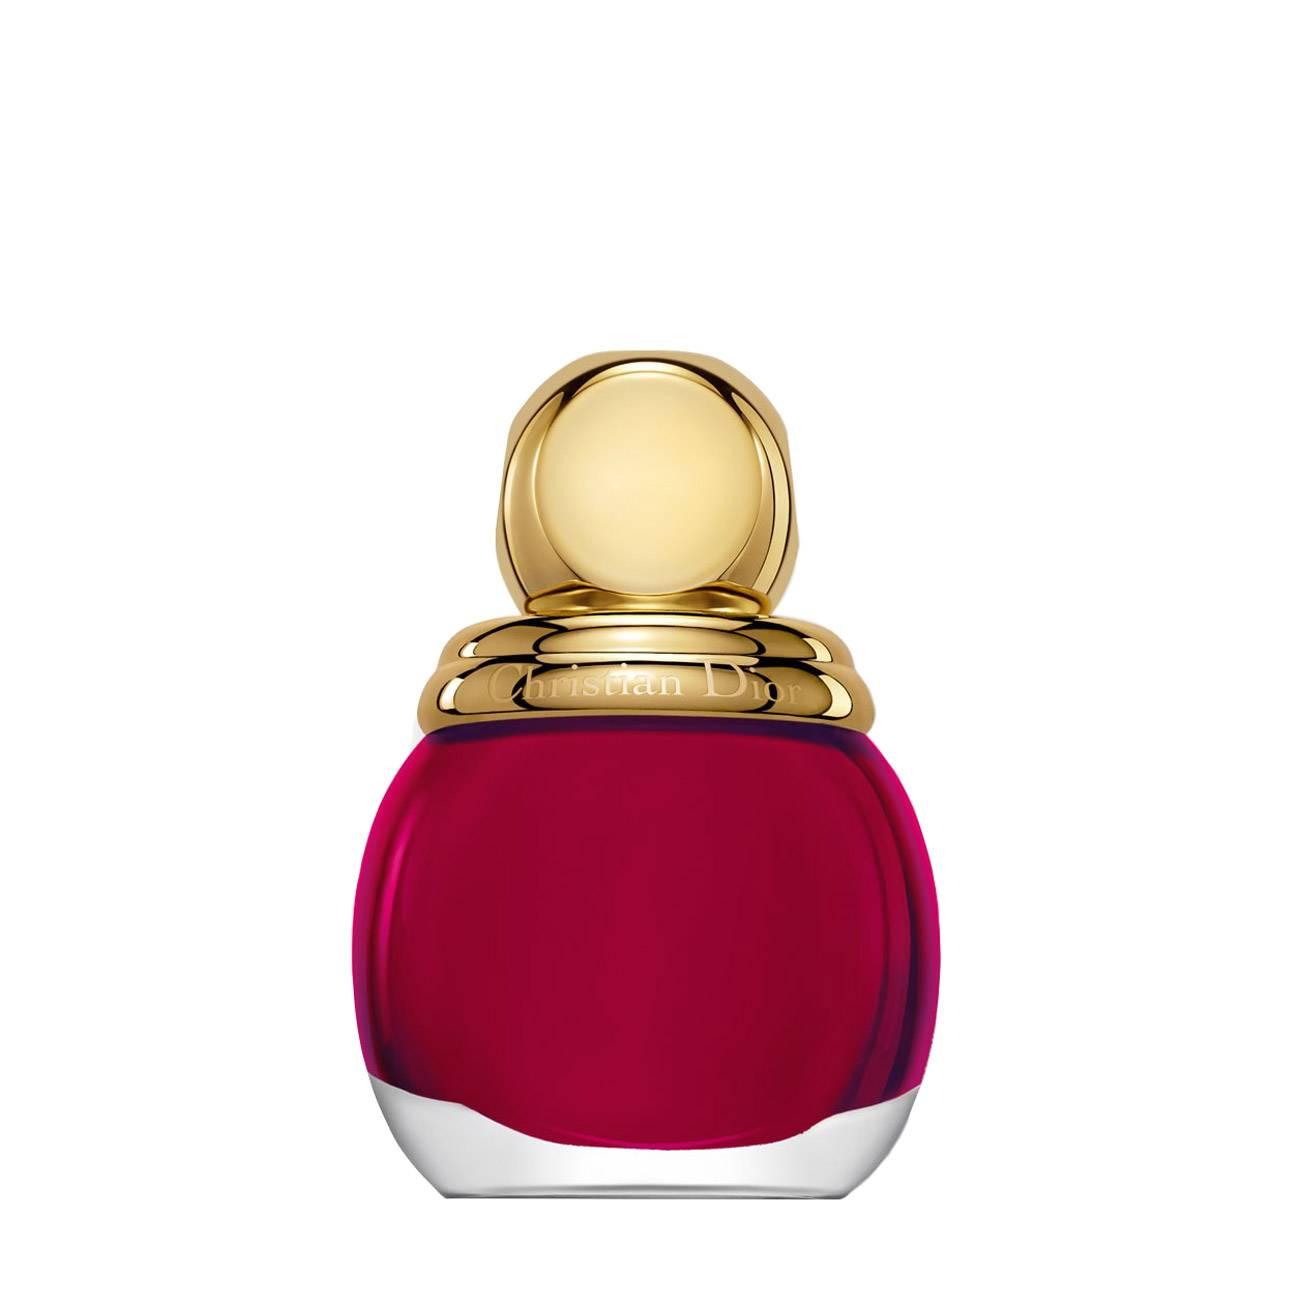 Diorific Vernis 745 12 Ml Dior imagine 2021 bestvalue.eu